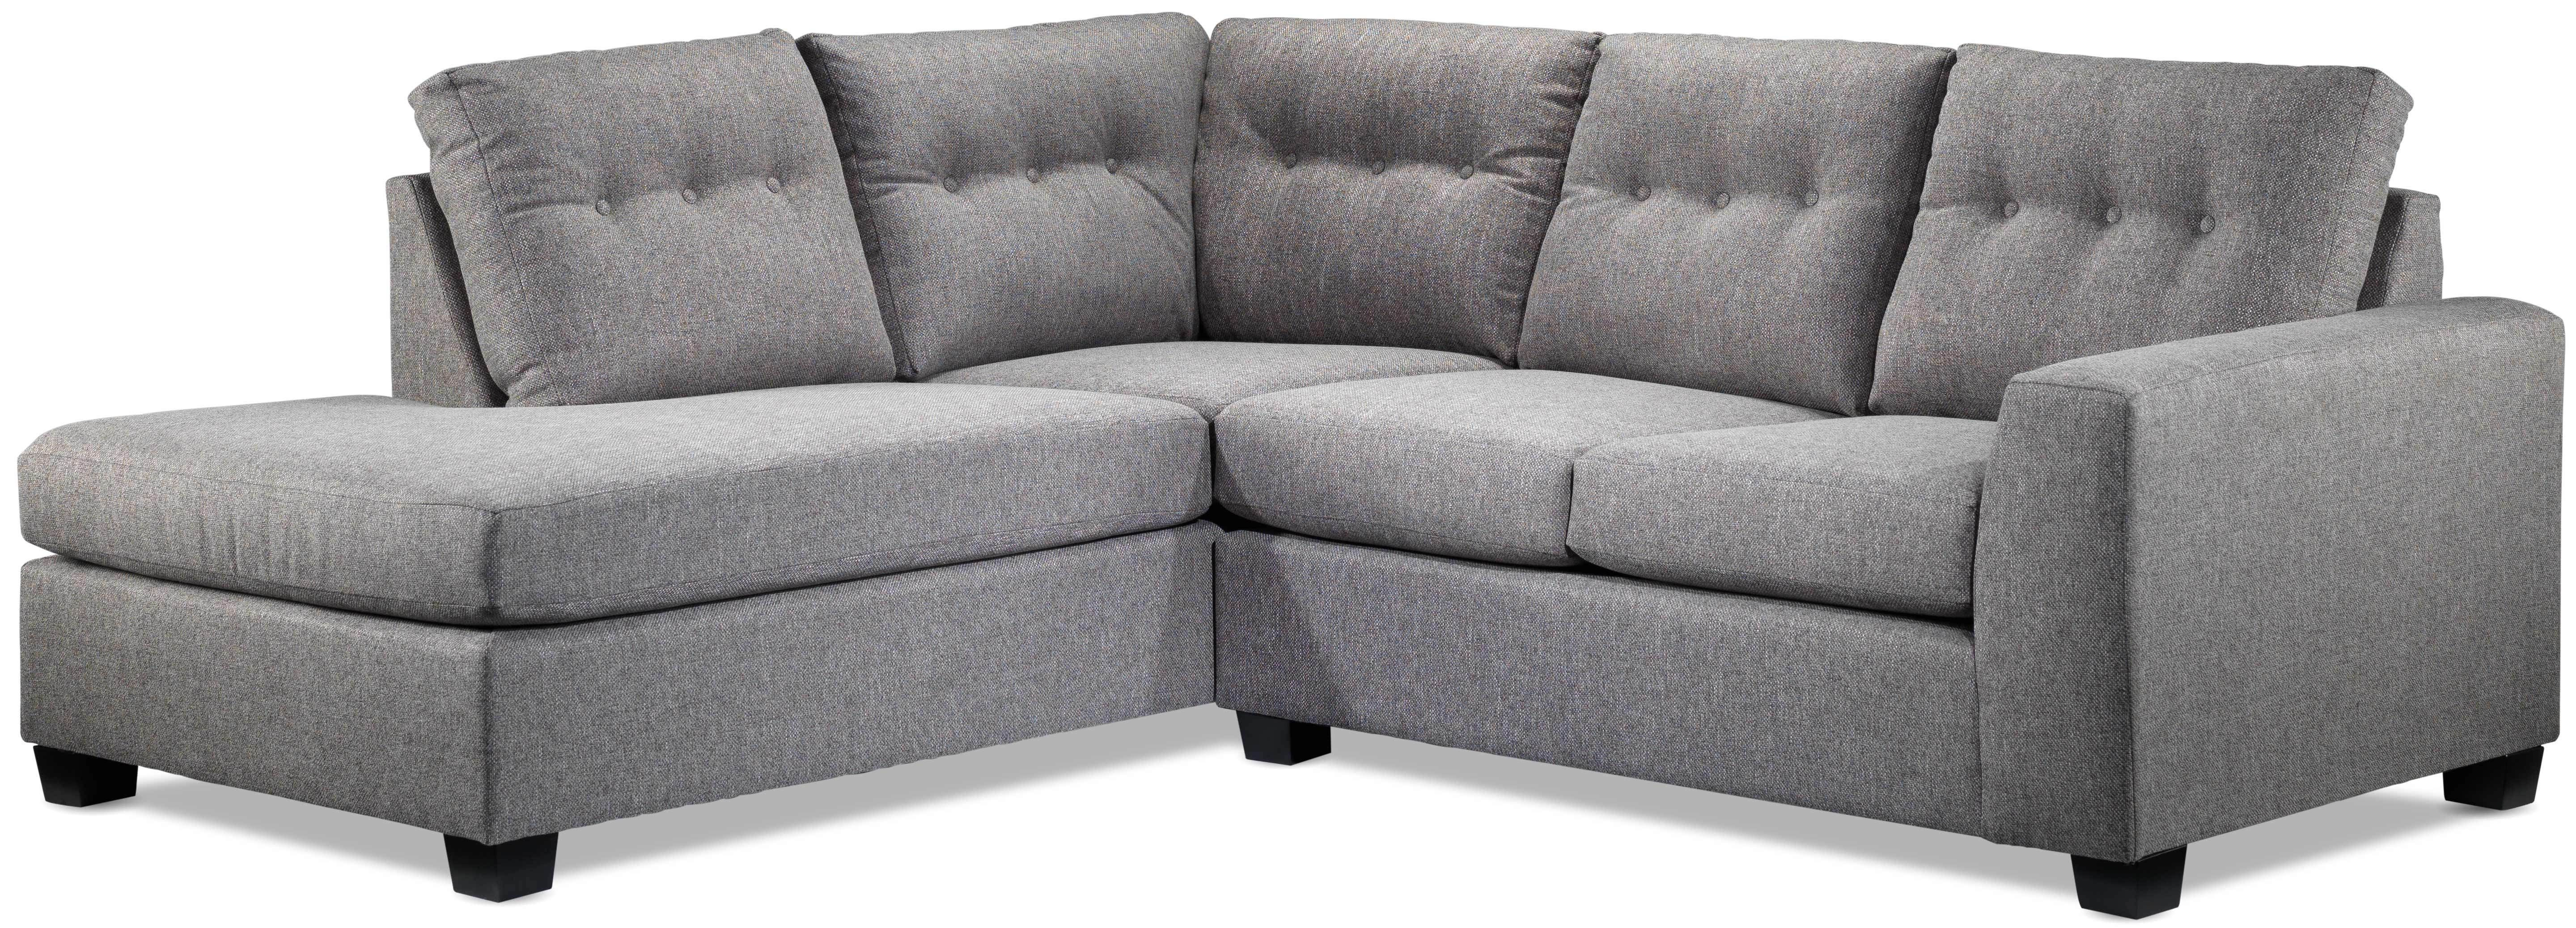 Estelle 2 Piece Sectional With Left Facing Chaise Grey Left Facing Chaise Sectional Mattress Sofa